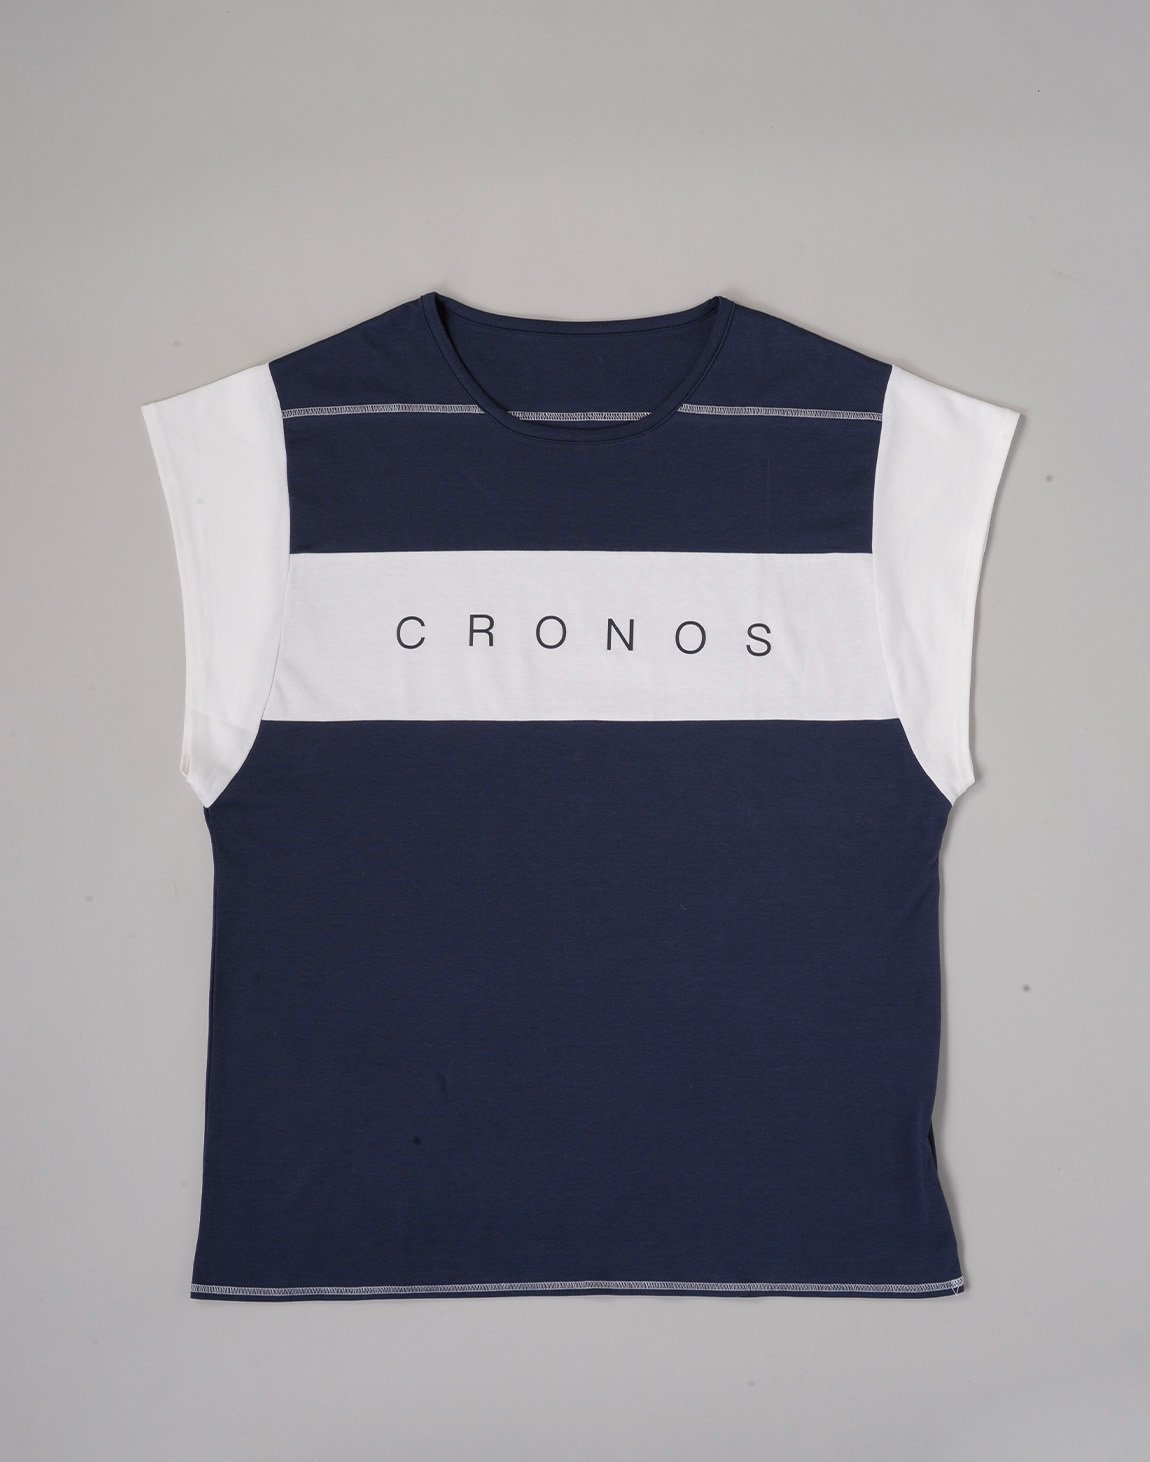 <img class='new_mark_img1' src='https://img.shop-pro.jp/img/new/icons1.gif' style='border:none;display:inline;margin:0px;padding:0px;width:auto;' />CRONOS BANNER LOGO TOPS【NAVY】